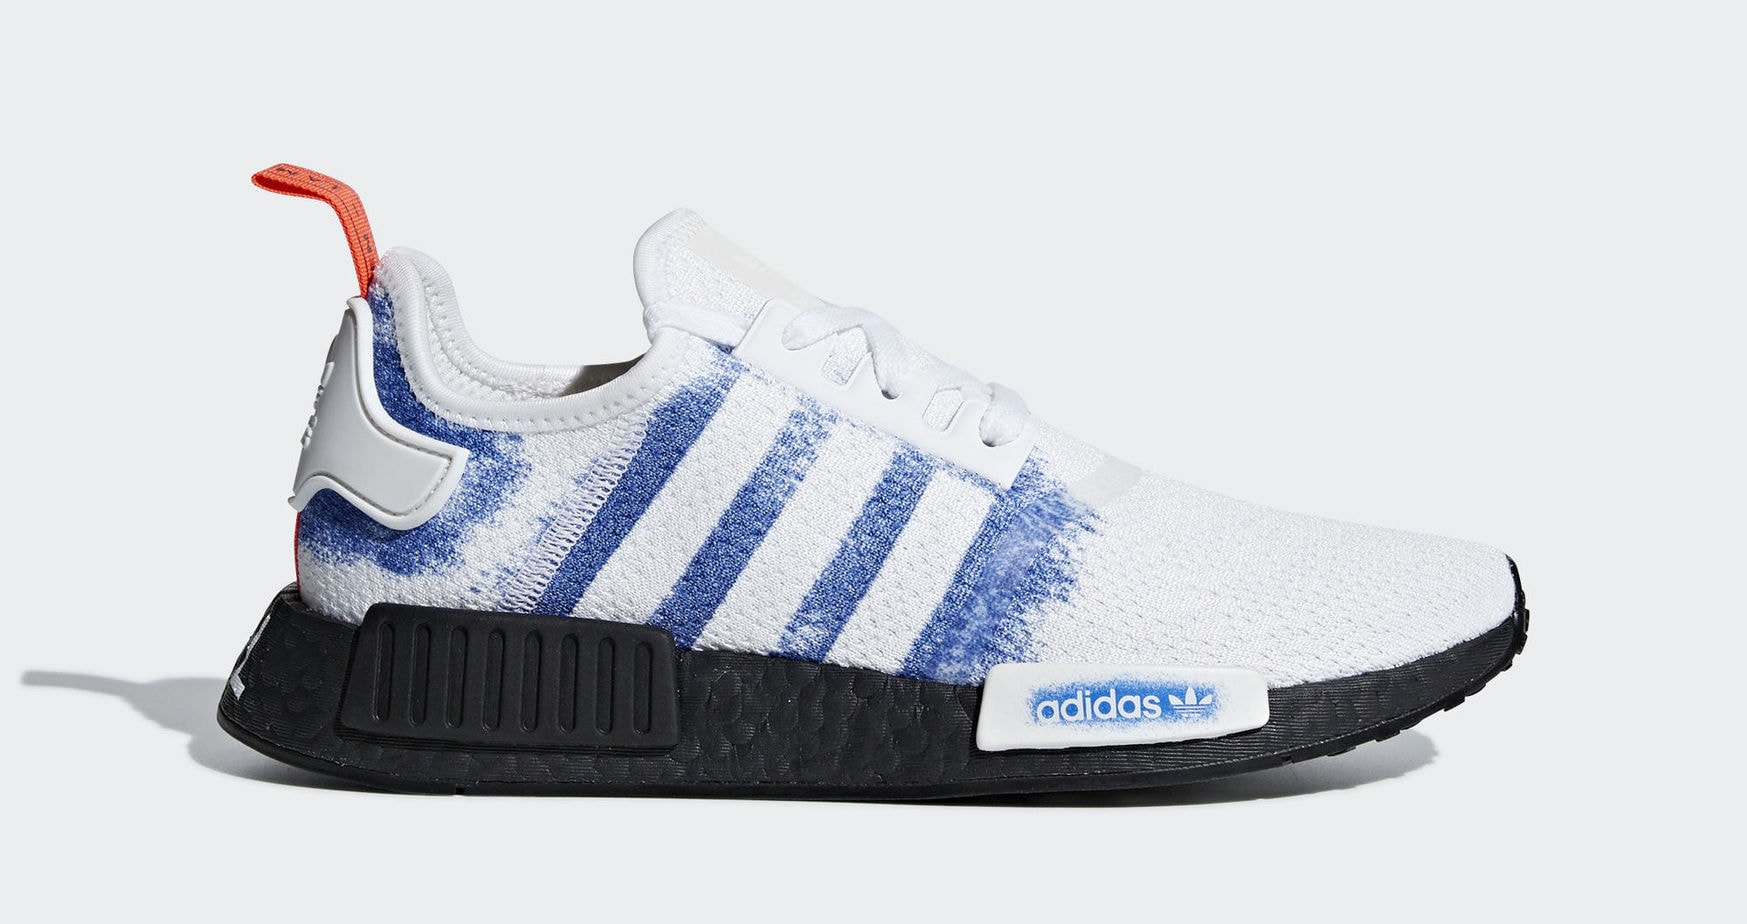 d4a68d06bdac37 ... adidas nmd r1 printed atl ftwr white bold blue core black october 13  2018